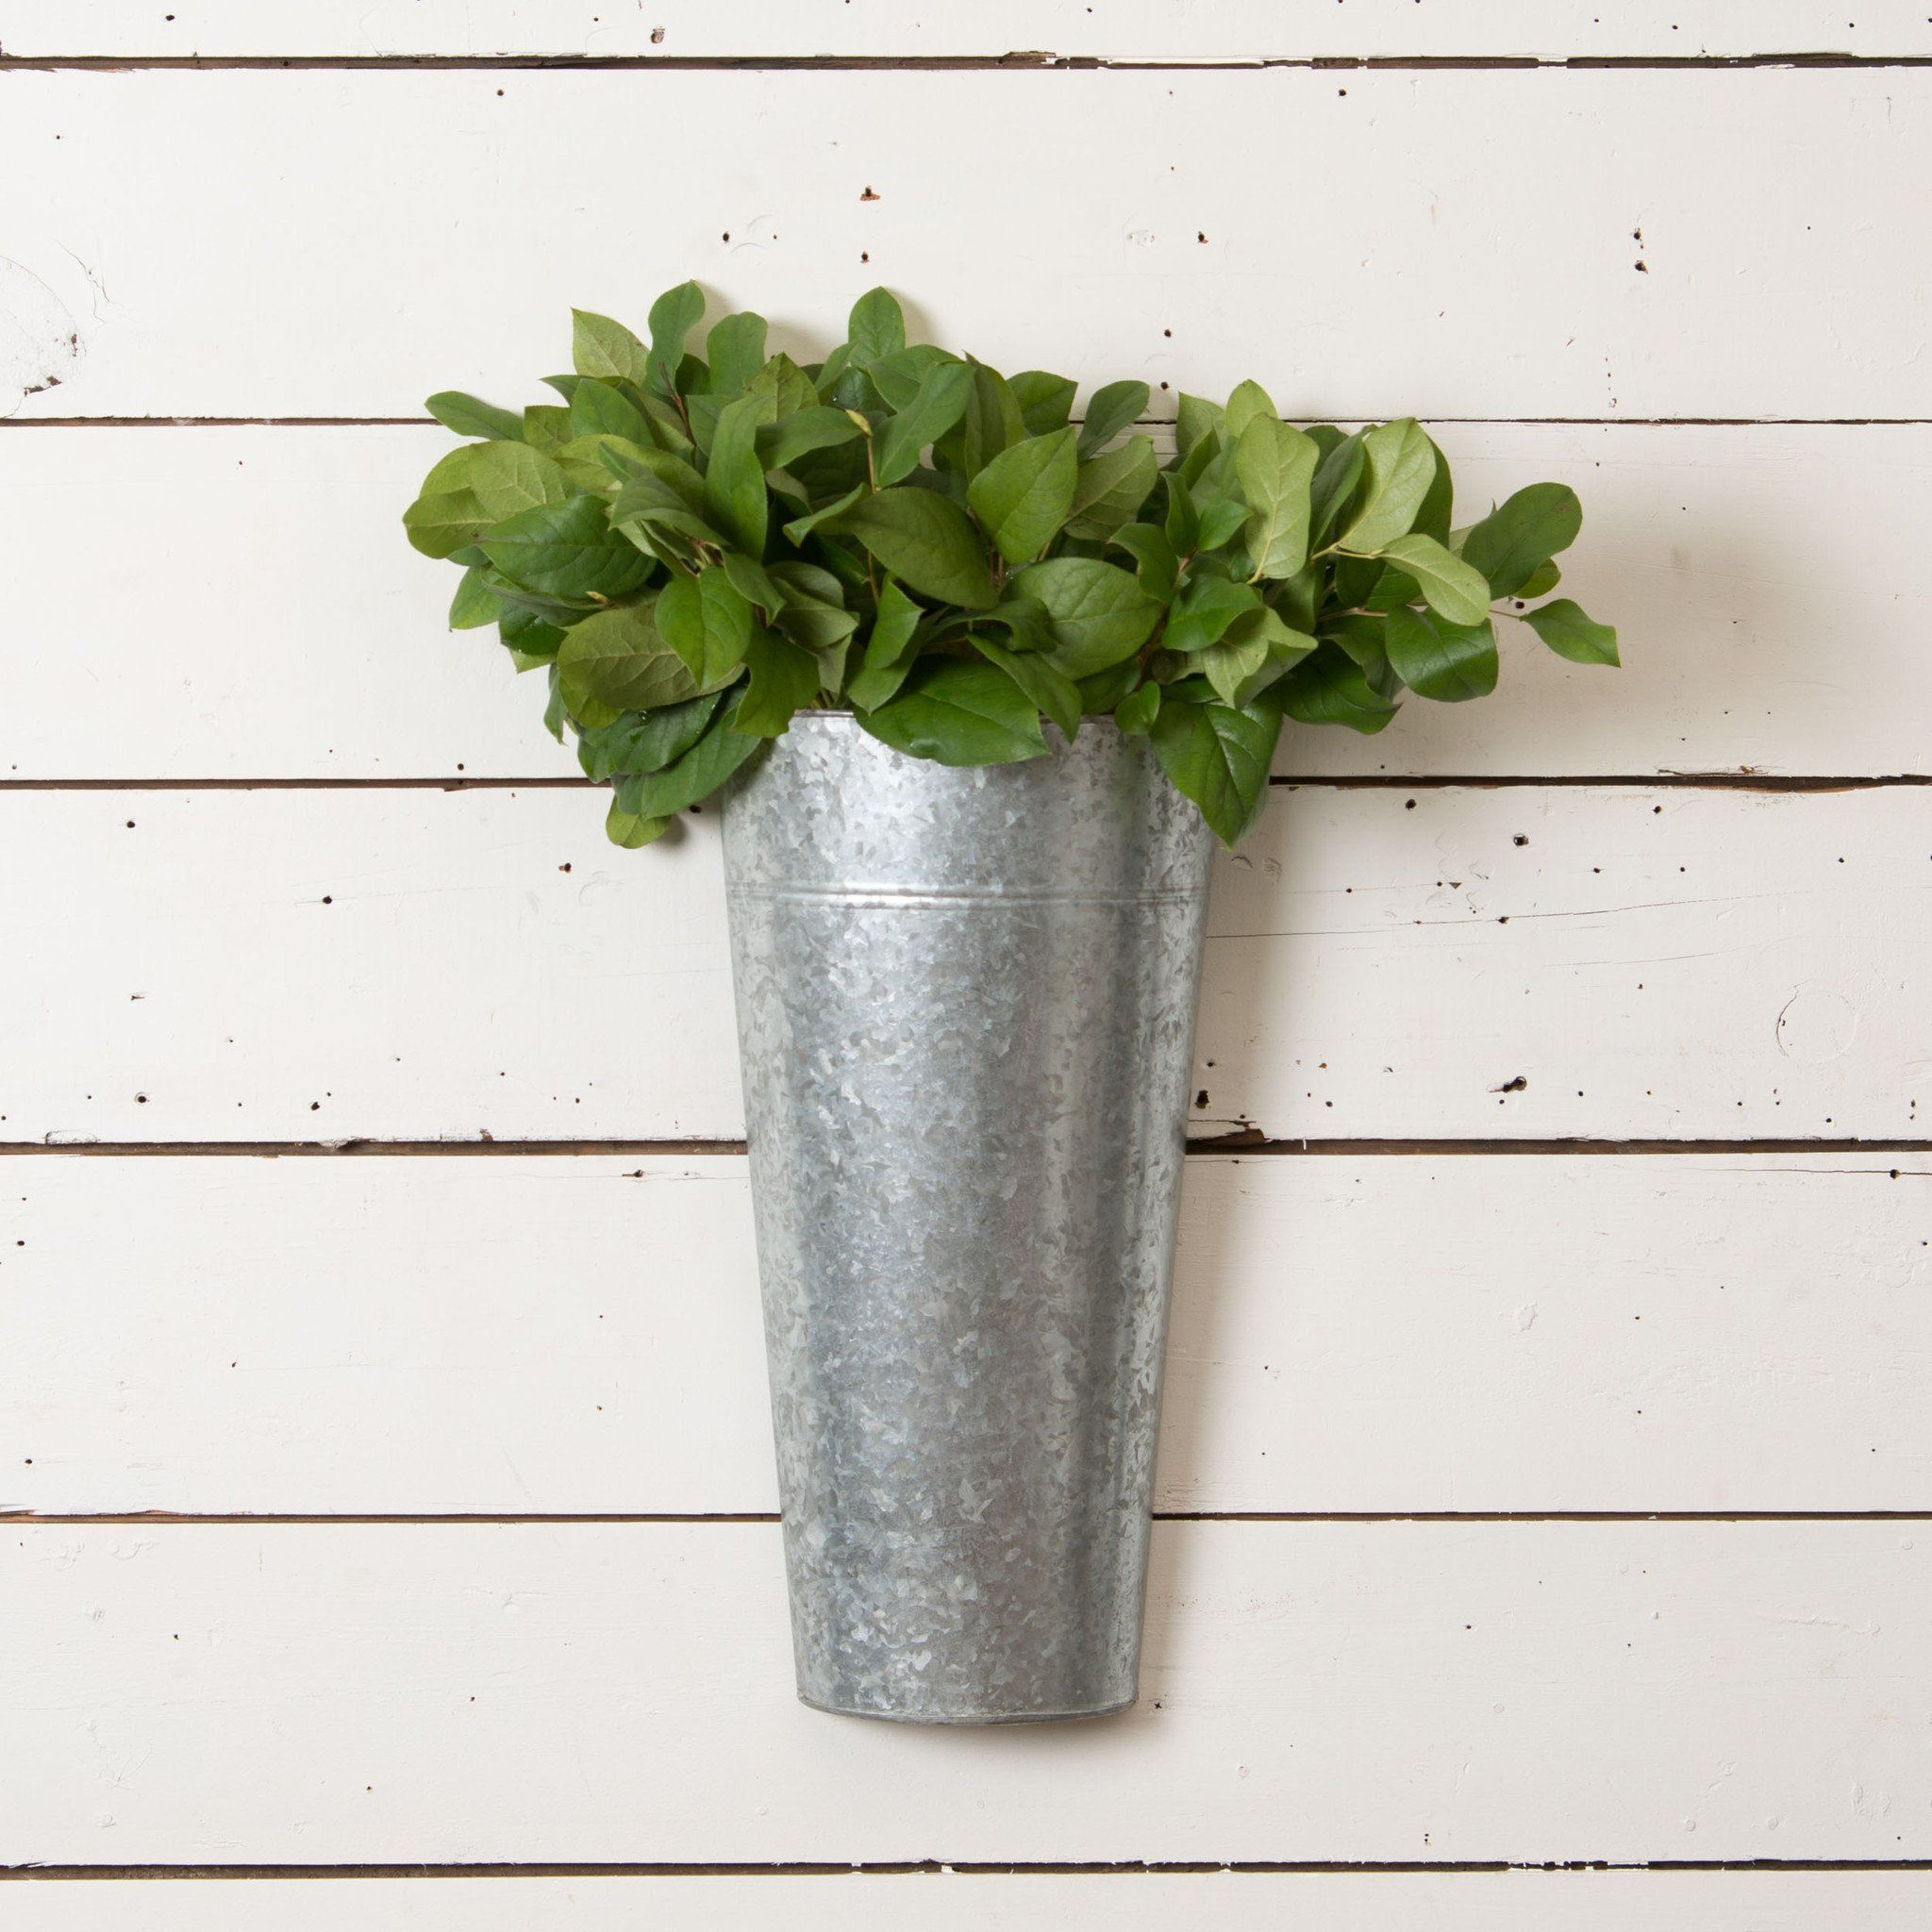 Galvanized Hanging Bucket Magnolia Market Chip Joanna Gaines Galvanized Metal Wall Wall Planter Hanging Wall Planters